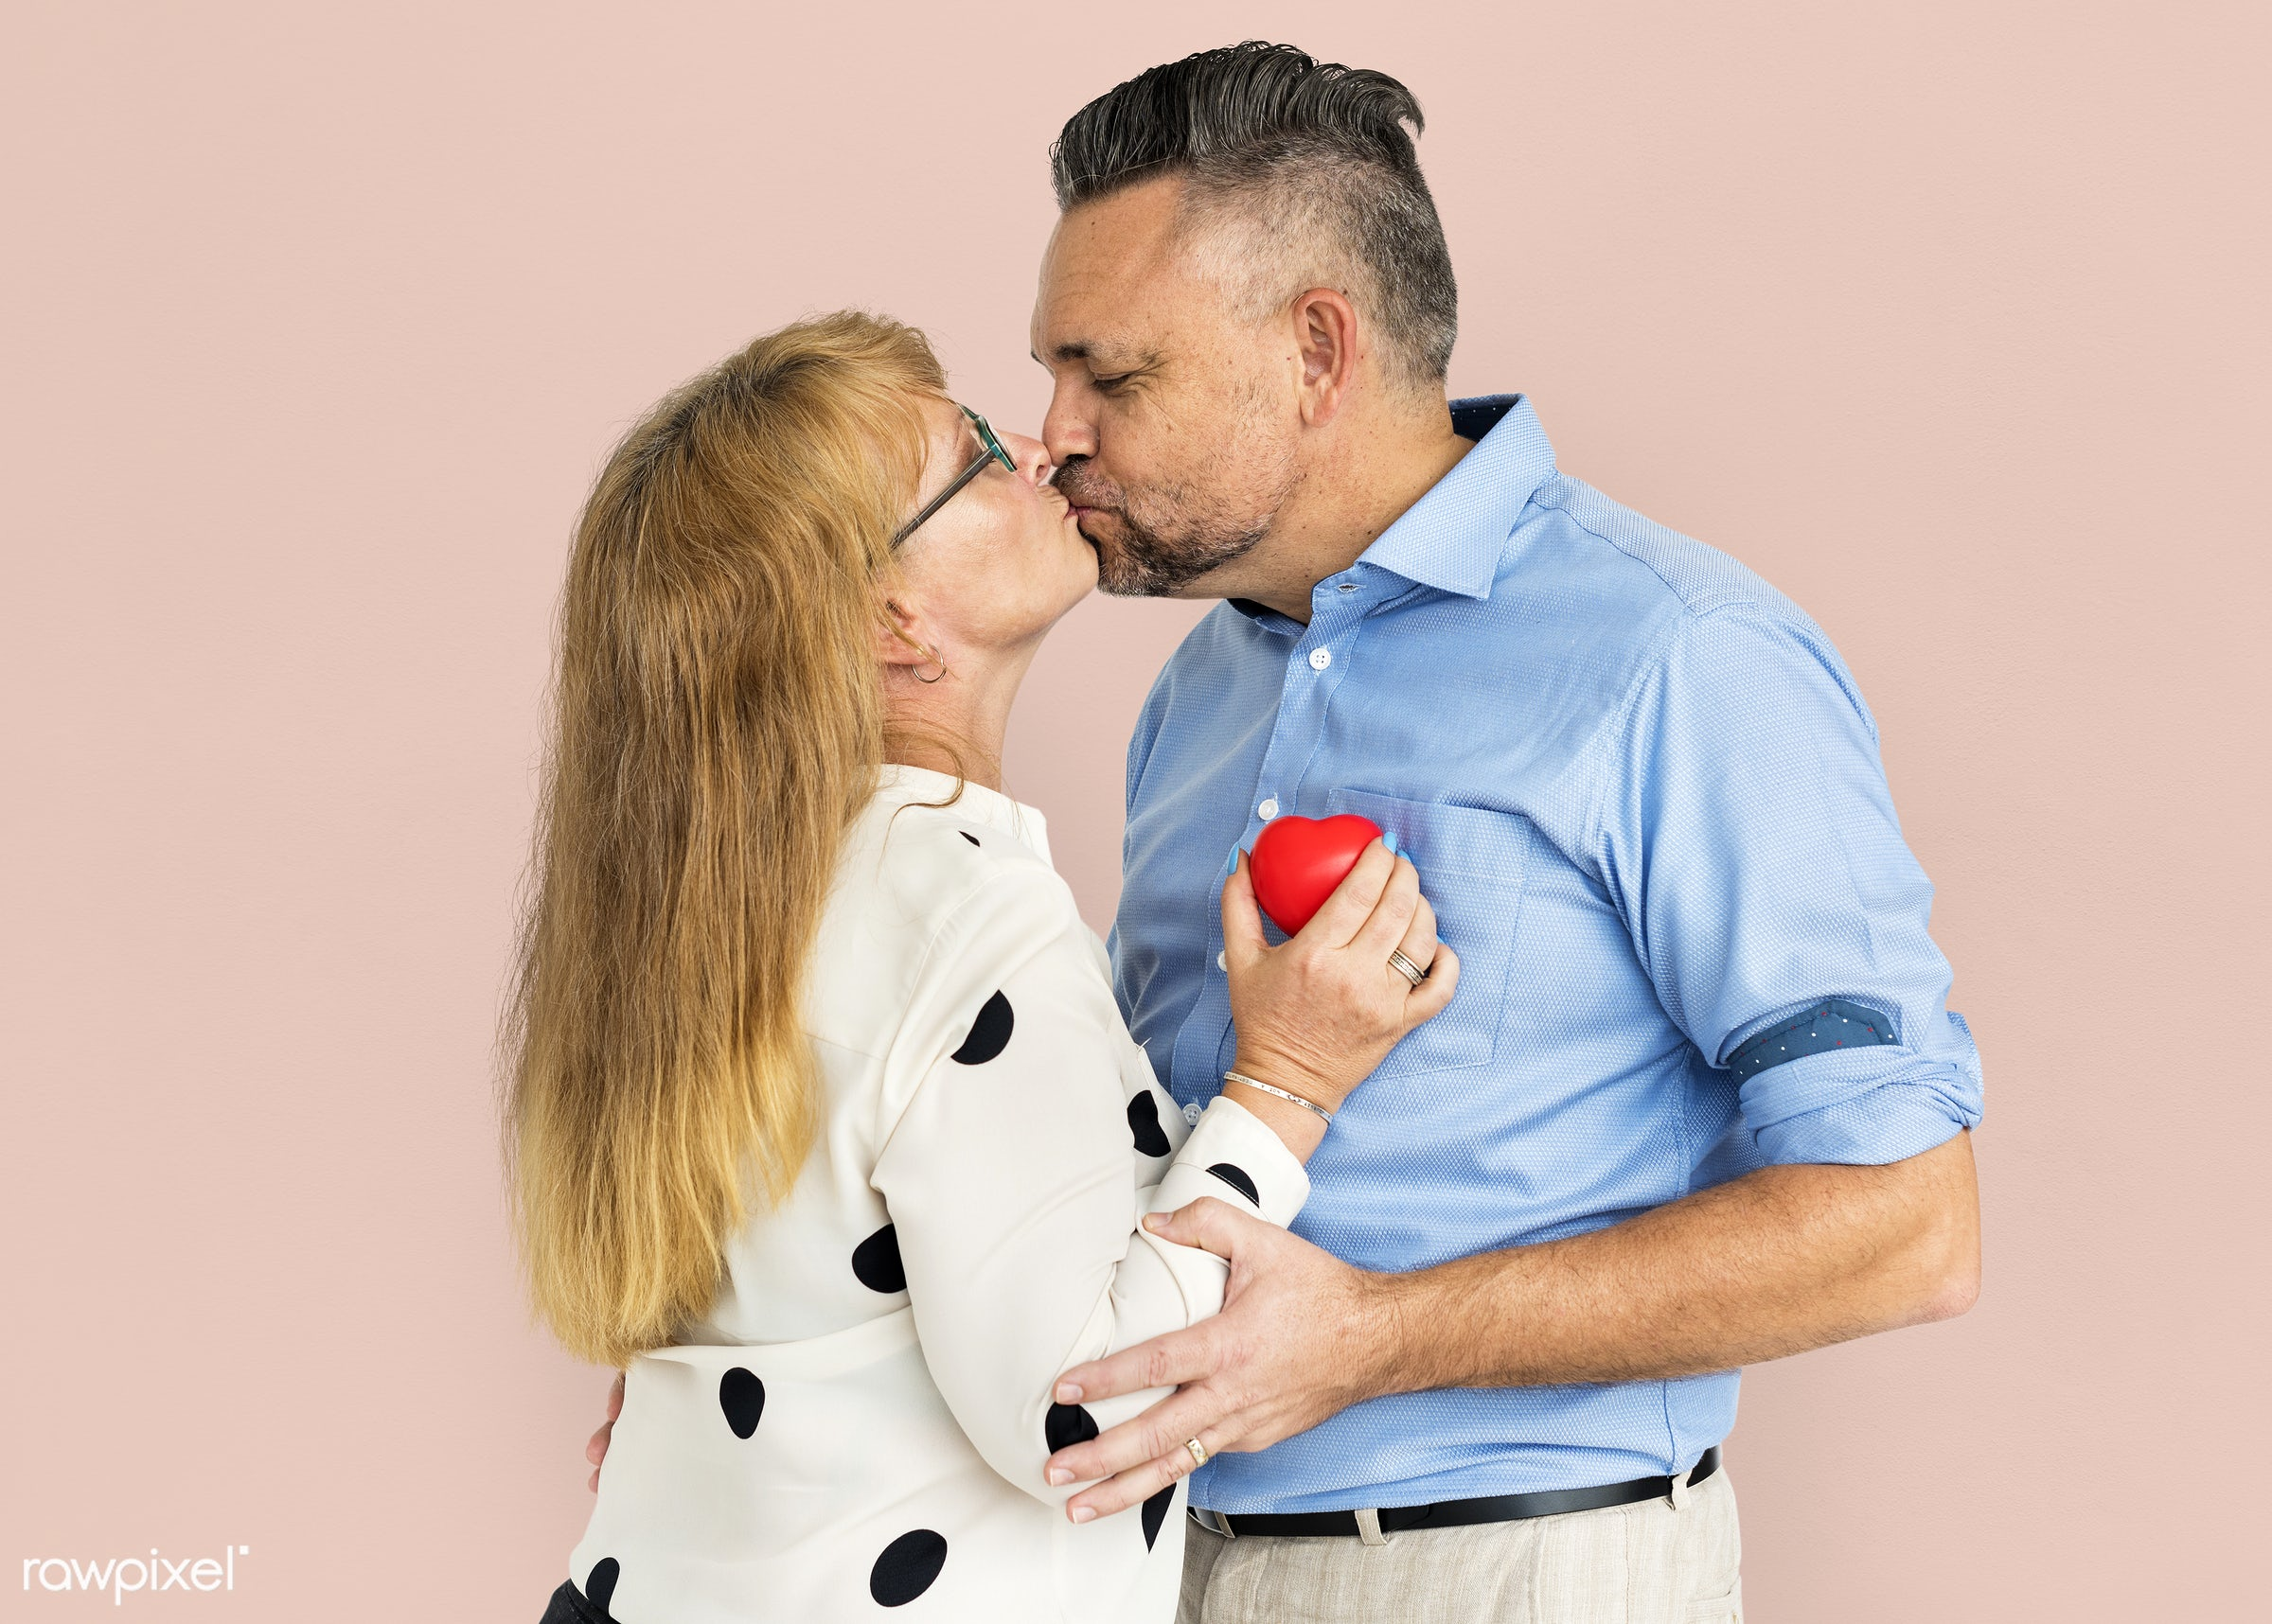 studio, person, people, together, caucasian, love, family, woman, care, pink, cheerful, smiling, affection, heart, kissing,...